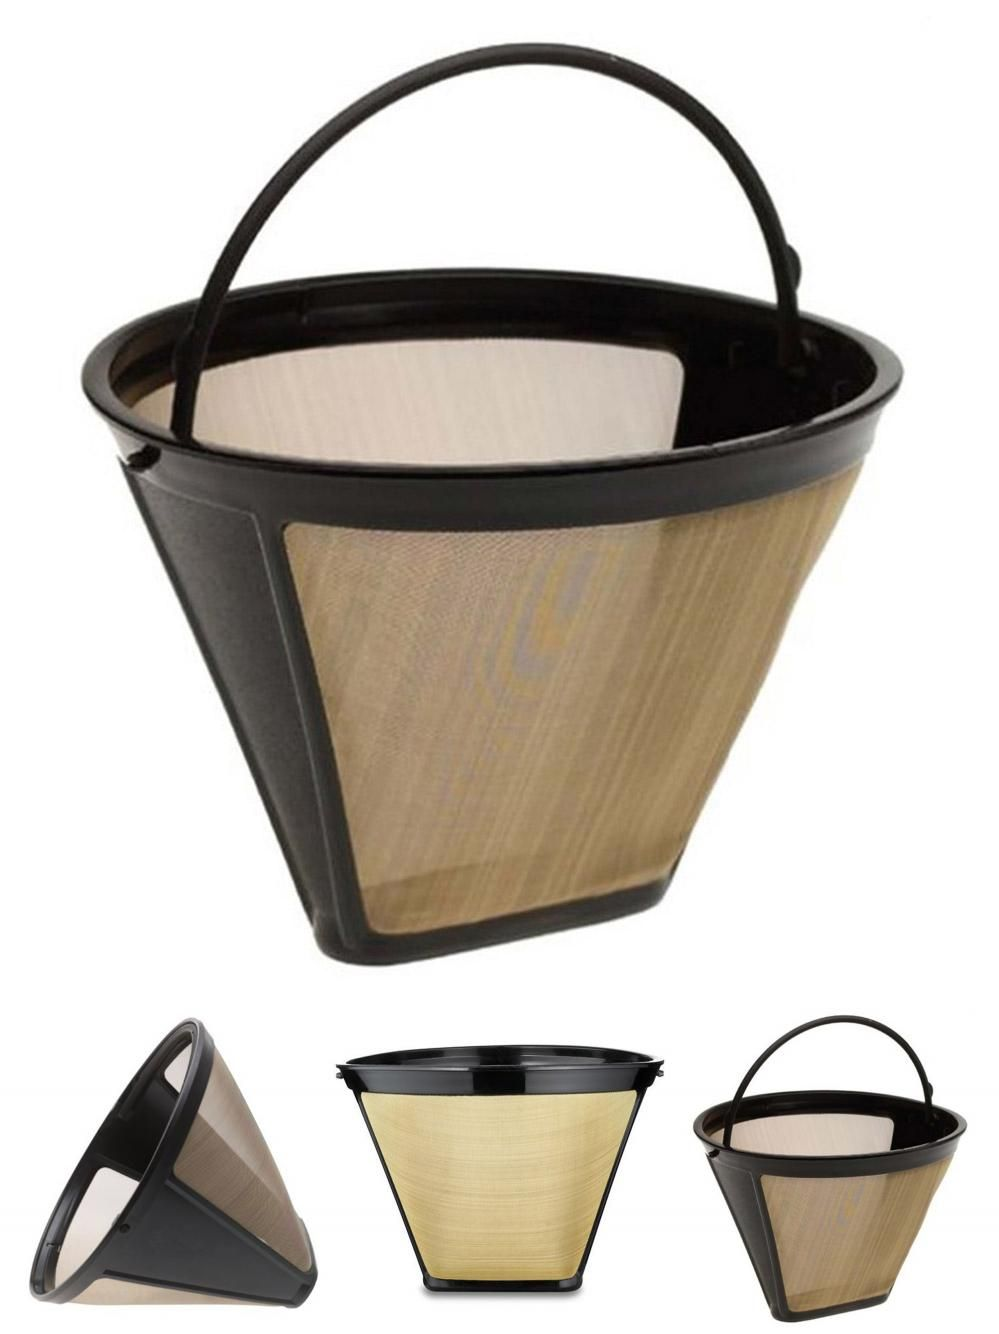 Visit To Buy New Reusable Coffee Filter 10 12 Cup Permanent Cone Style Coffee Maker Machine Filter Gold Mesh With Handle Caf Reusable Coffee Filter Coffee Maker Machine Coffee Filters